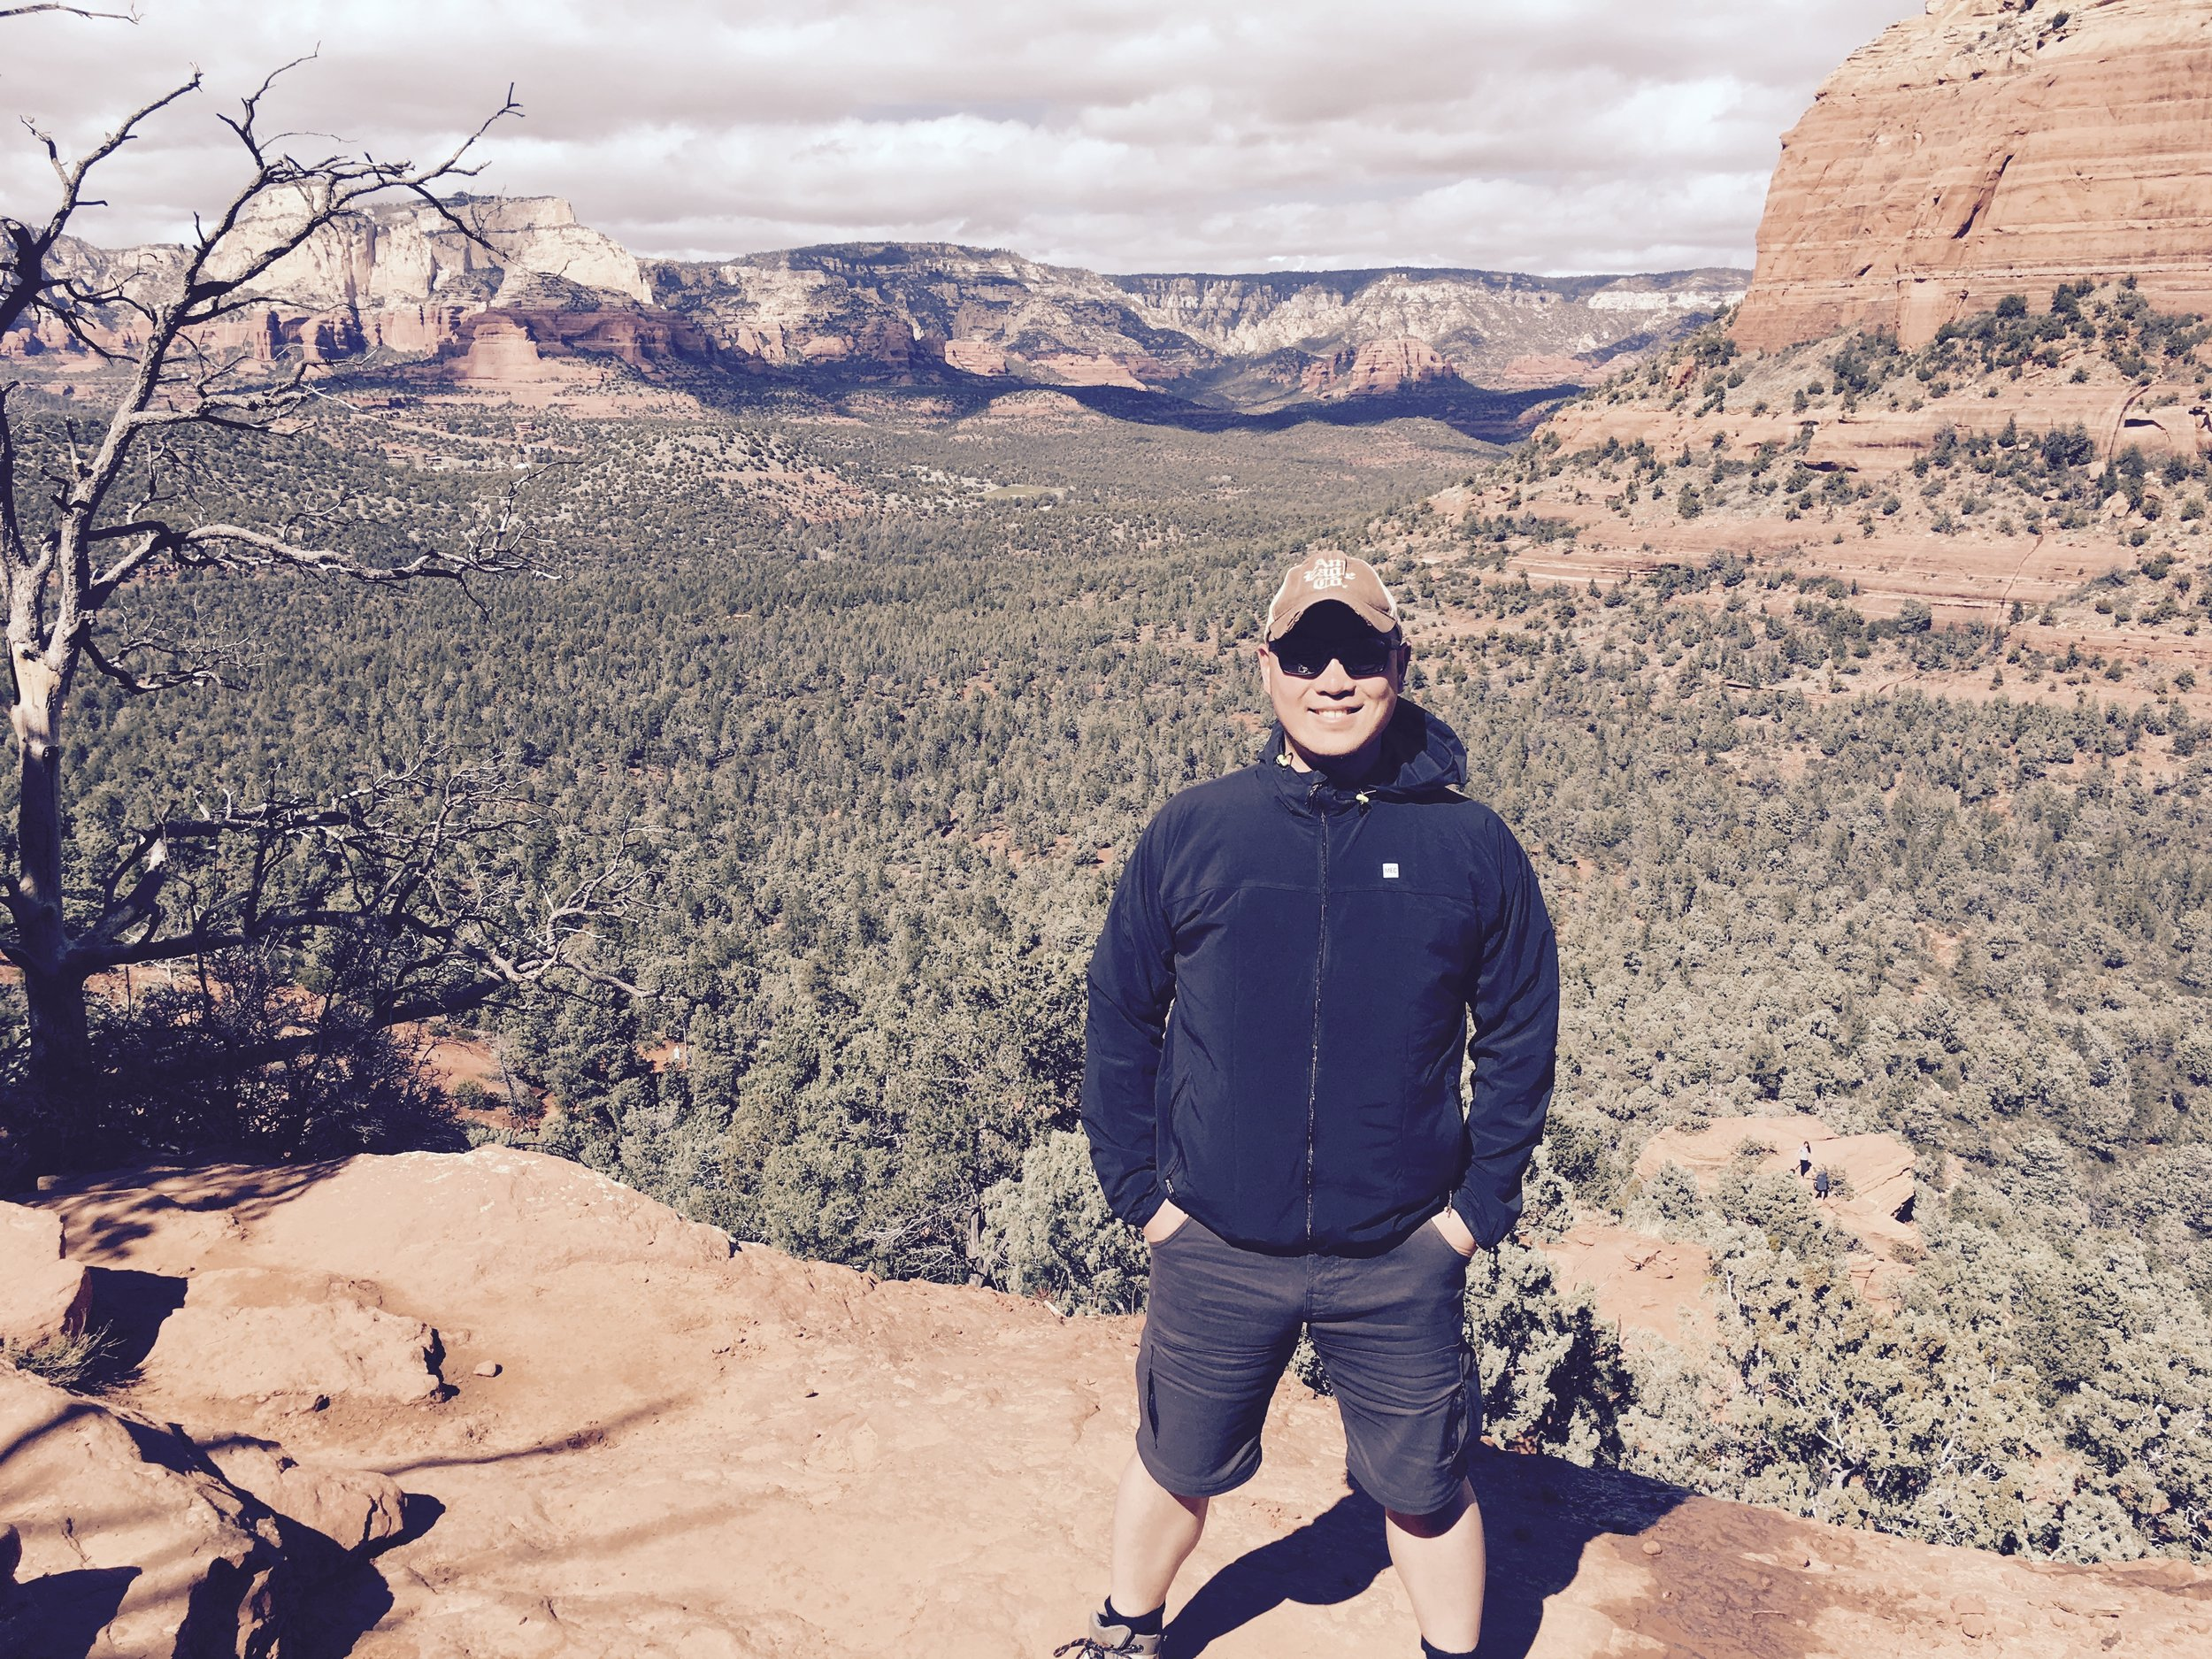 """In Sedona, Arizona in February 2017. Alex is continually drawn by the power of this rich, red oasis. Muladara, the """"root"""" chakra (or """"energetic power center"""")abounds in this deeply spiritual place."""